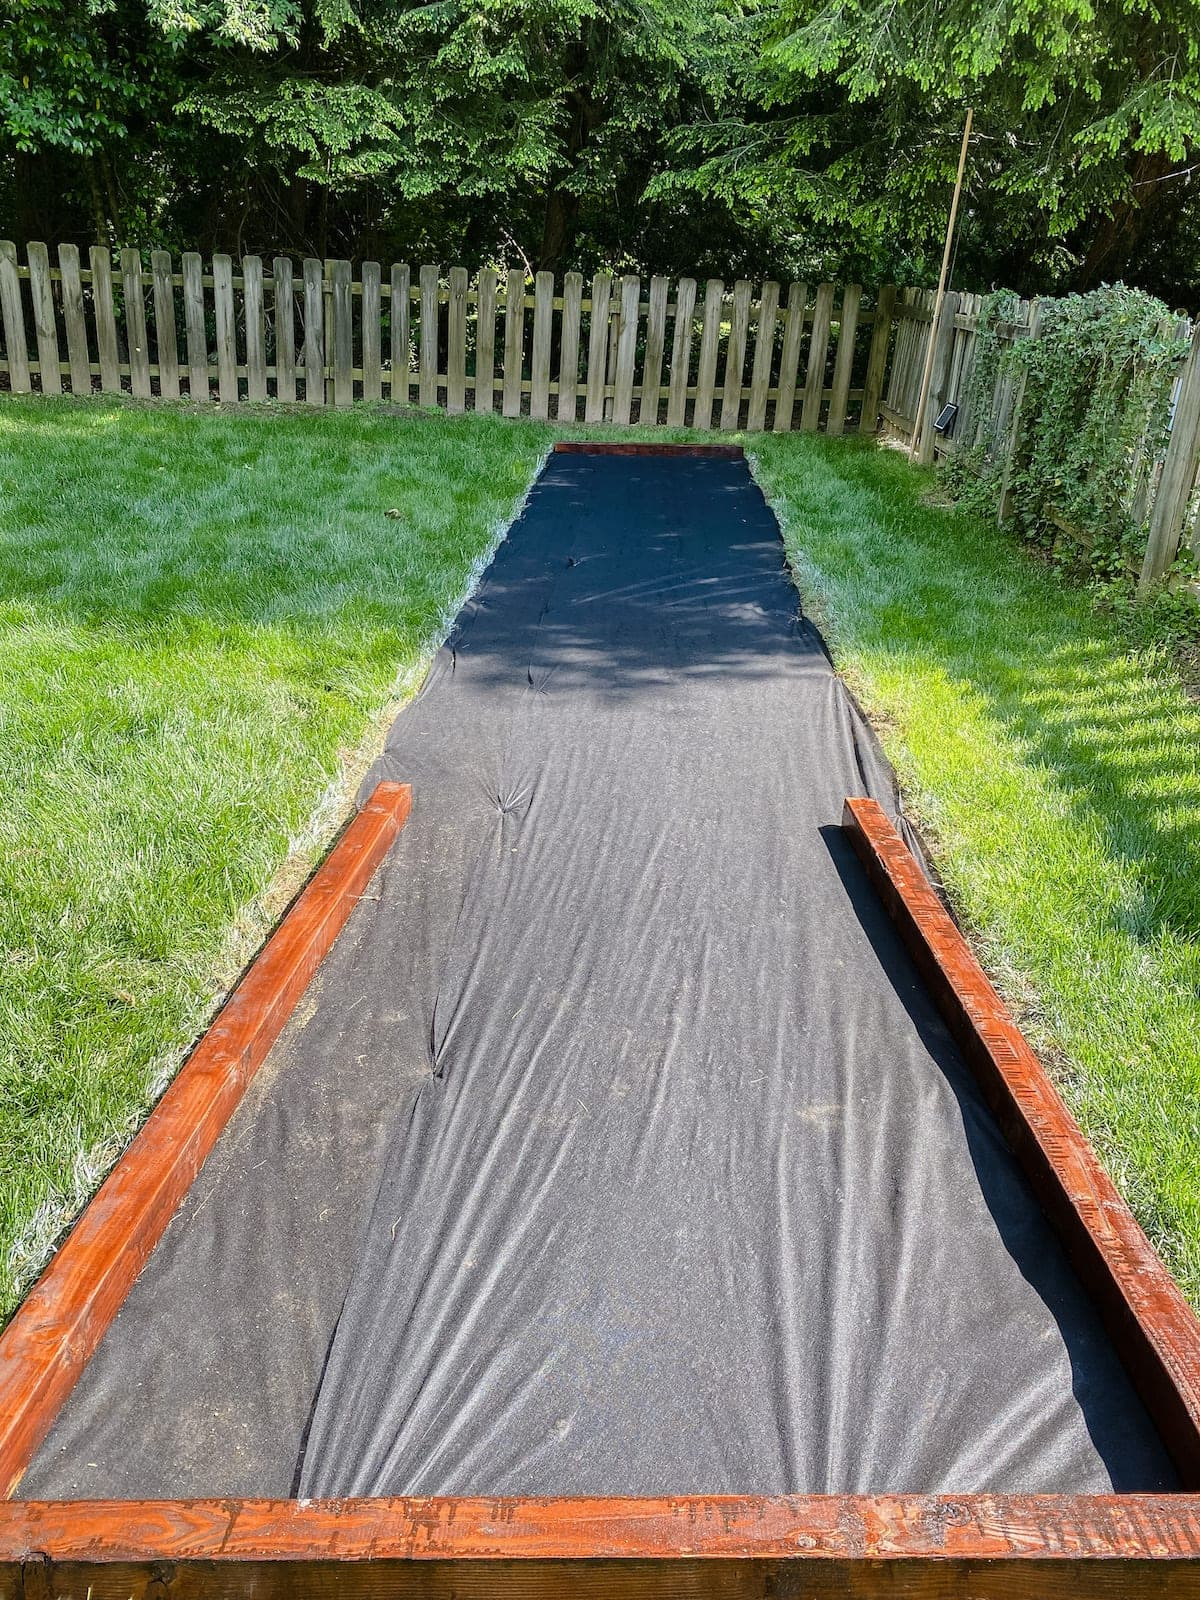 weed fabric for a bocce ball court base